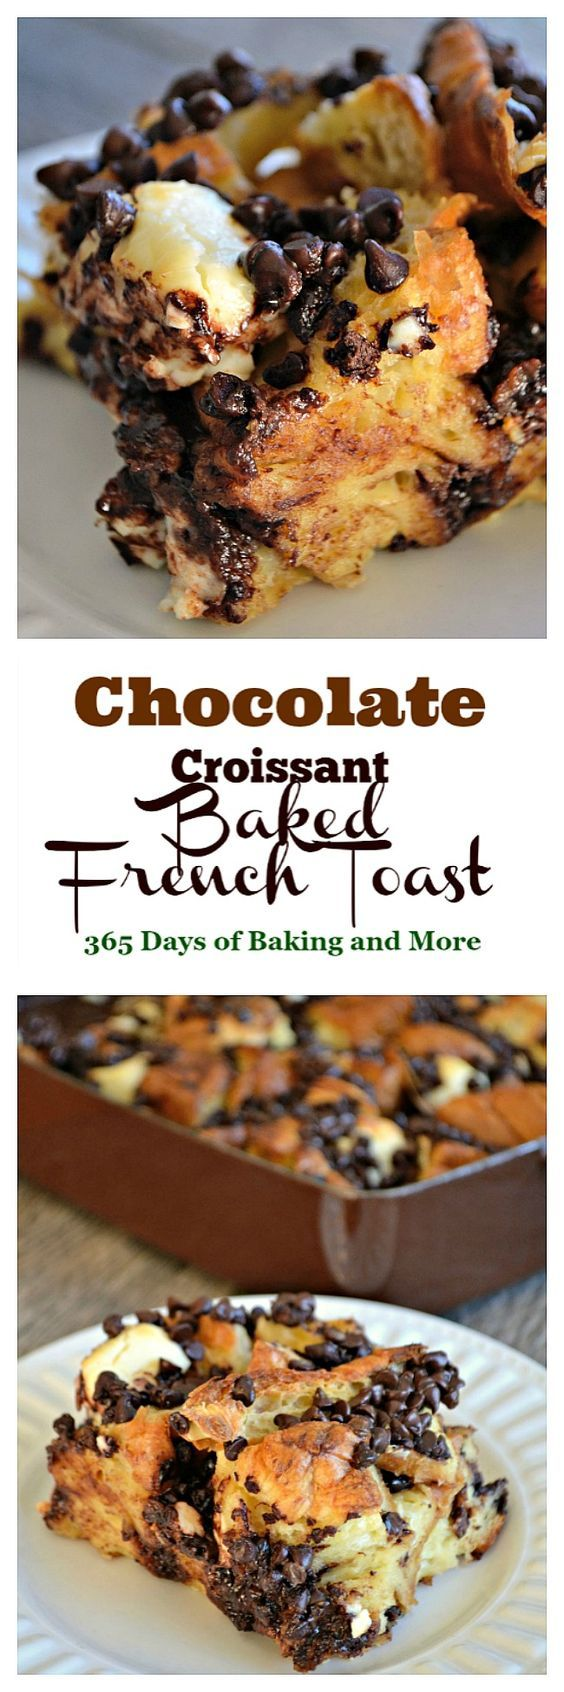 Chocolate Croissant Baked French Toast is chocolate, croissants, and cream cheese soaked overnight in an egg mixture. It's a delicious overnight breakfast.